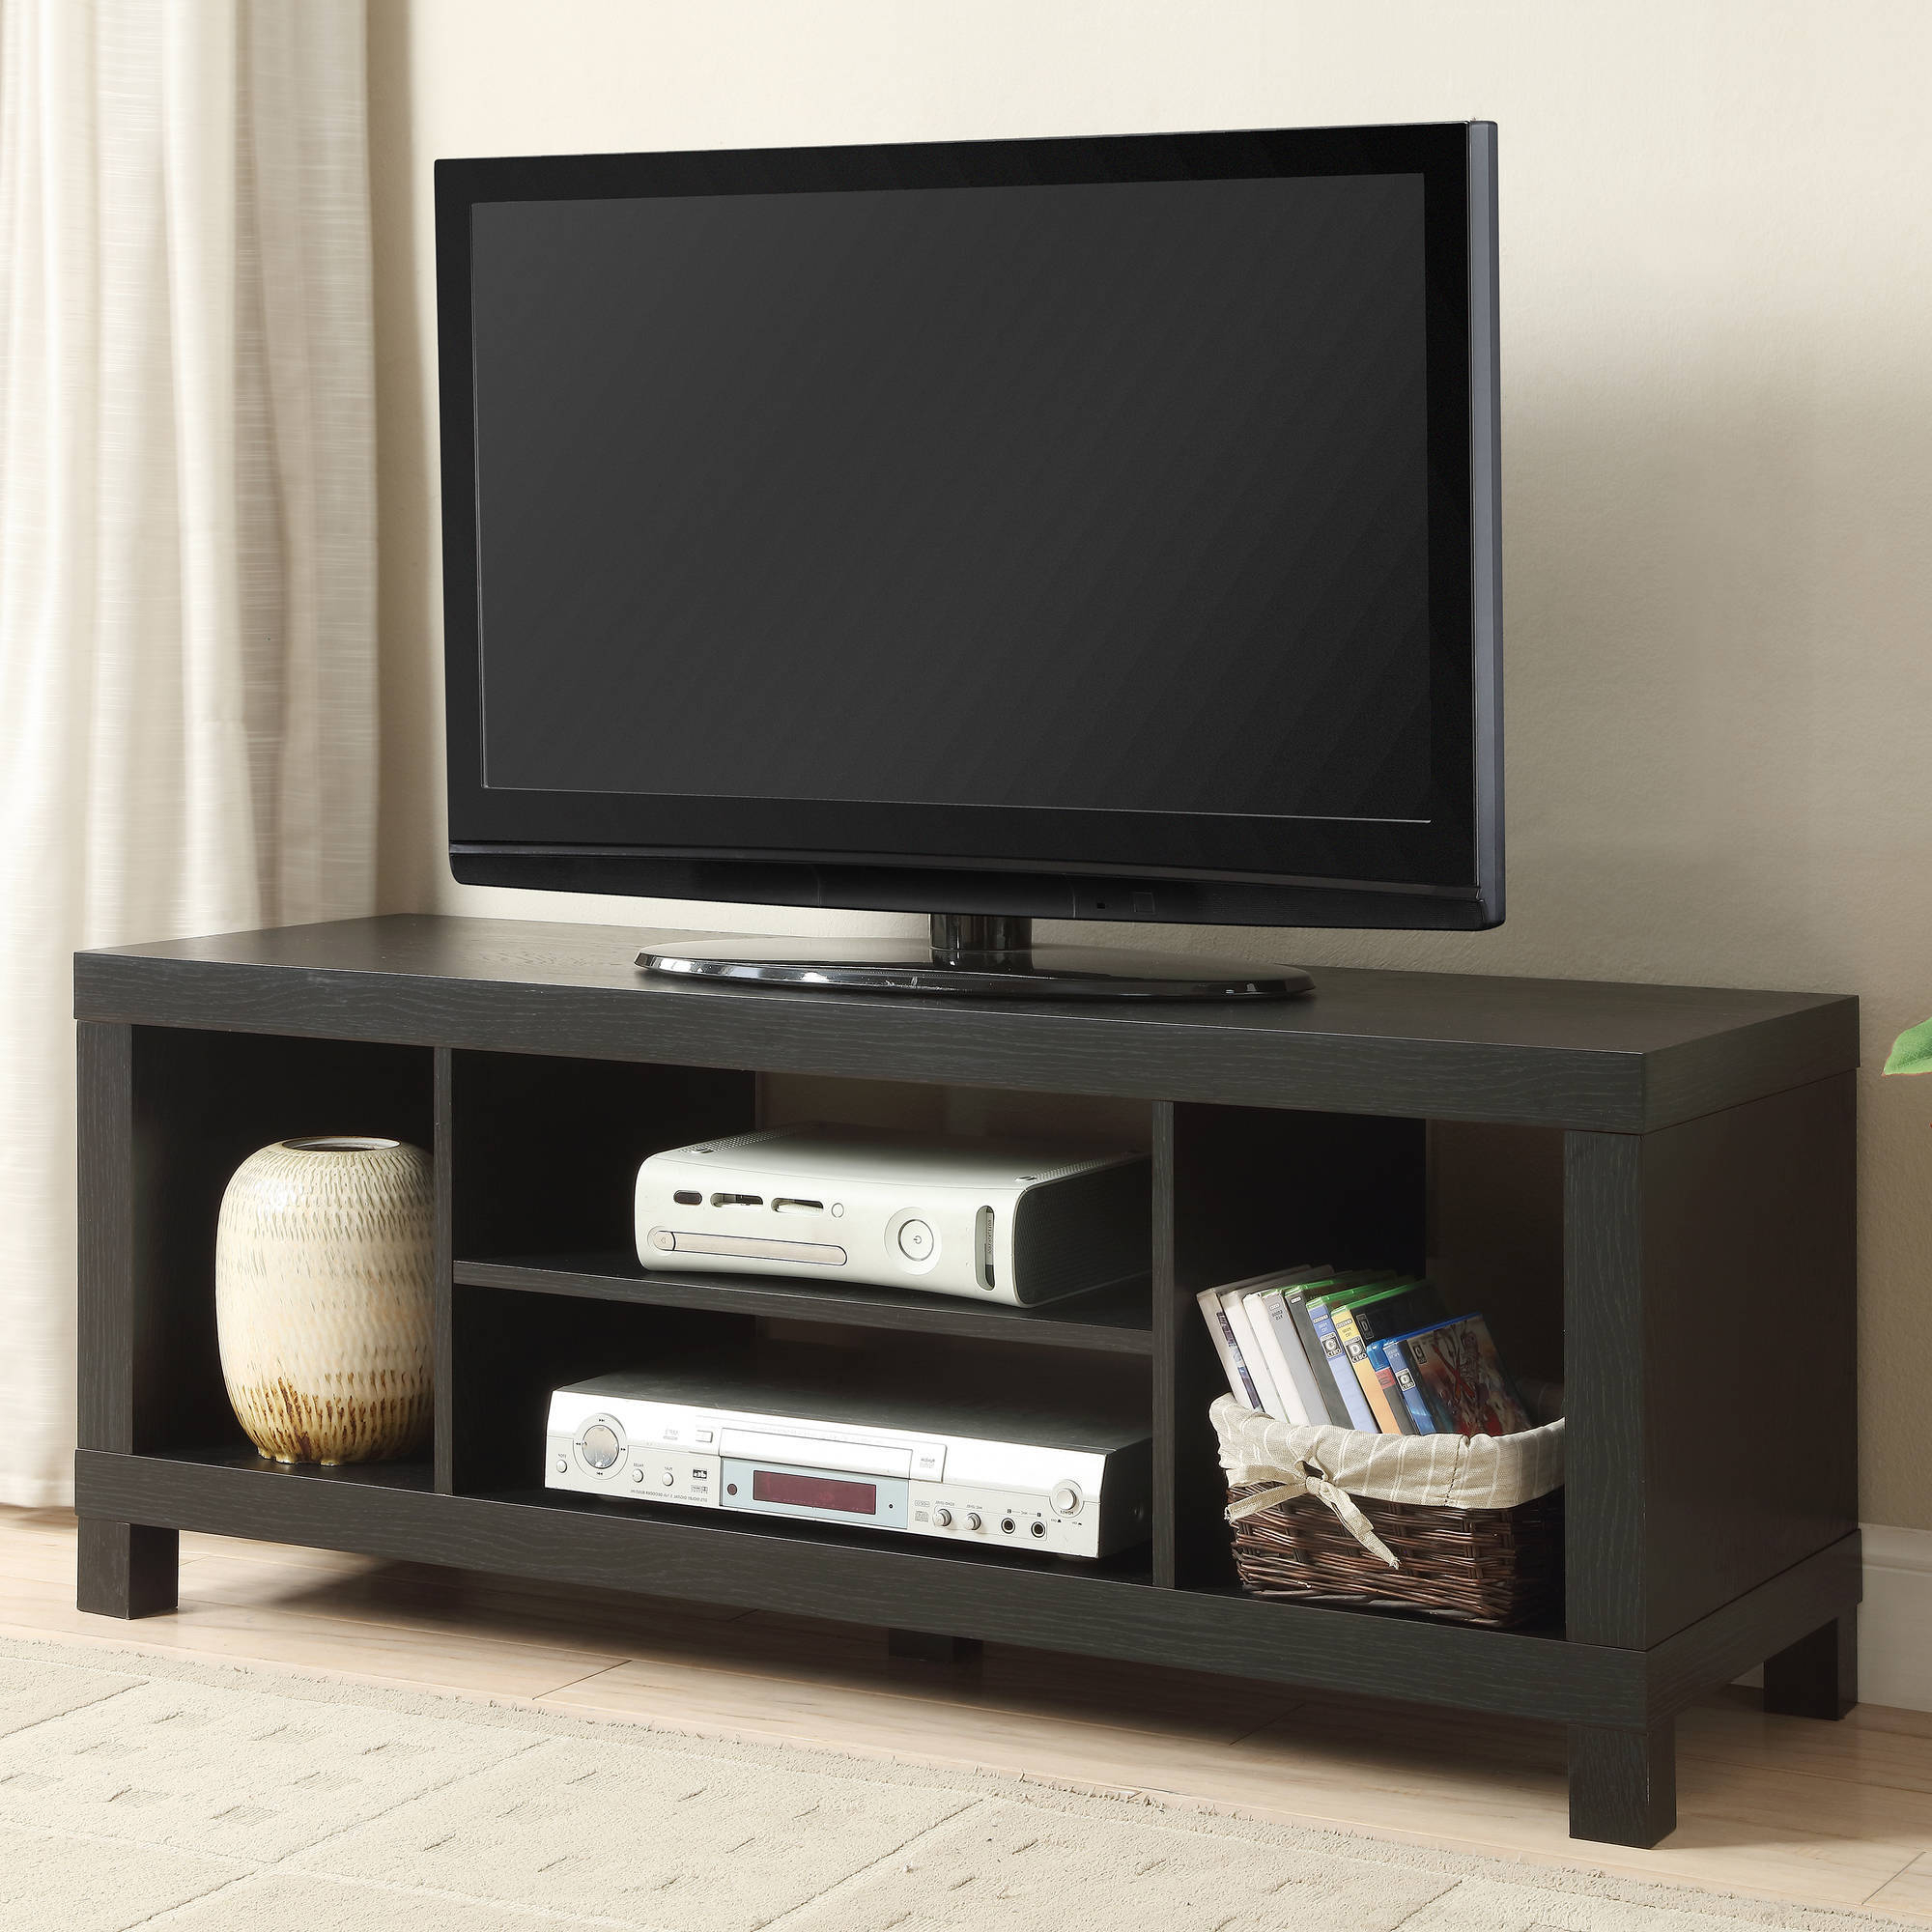 """42 Inch Tv Stand Entertainment Center Home Theater Media Pertaining To Wood Corner Storage Console Tv Stands For Tvs Up To 55"""" White (View 3 of 20)"""